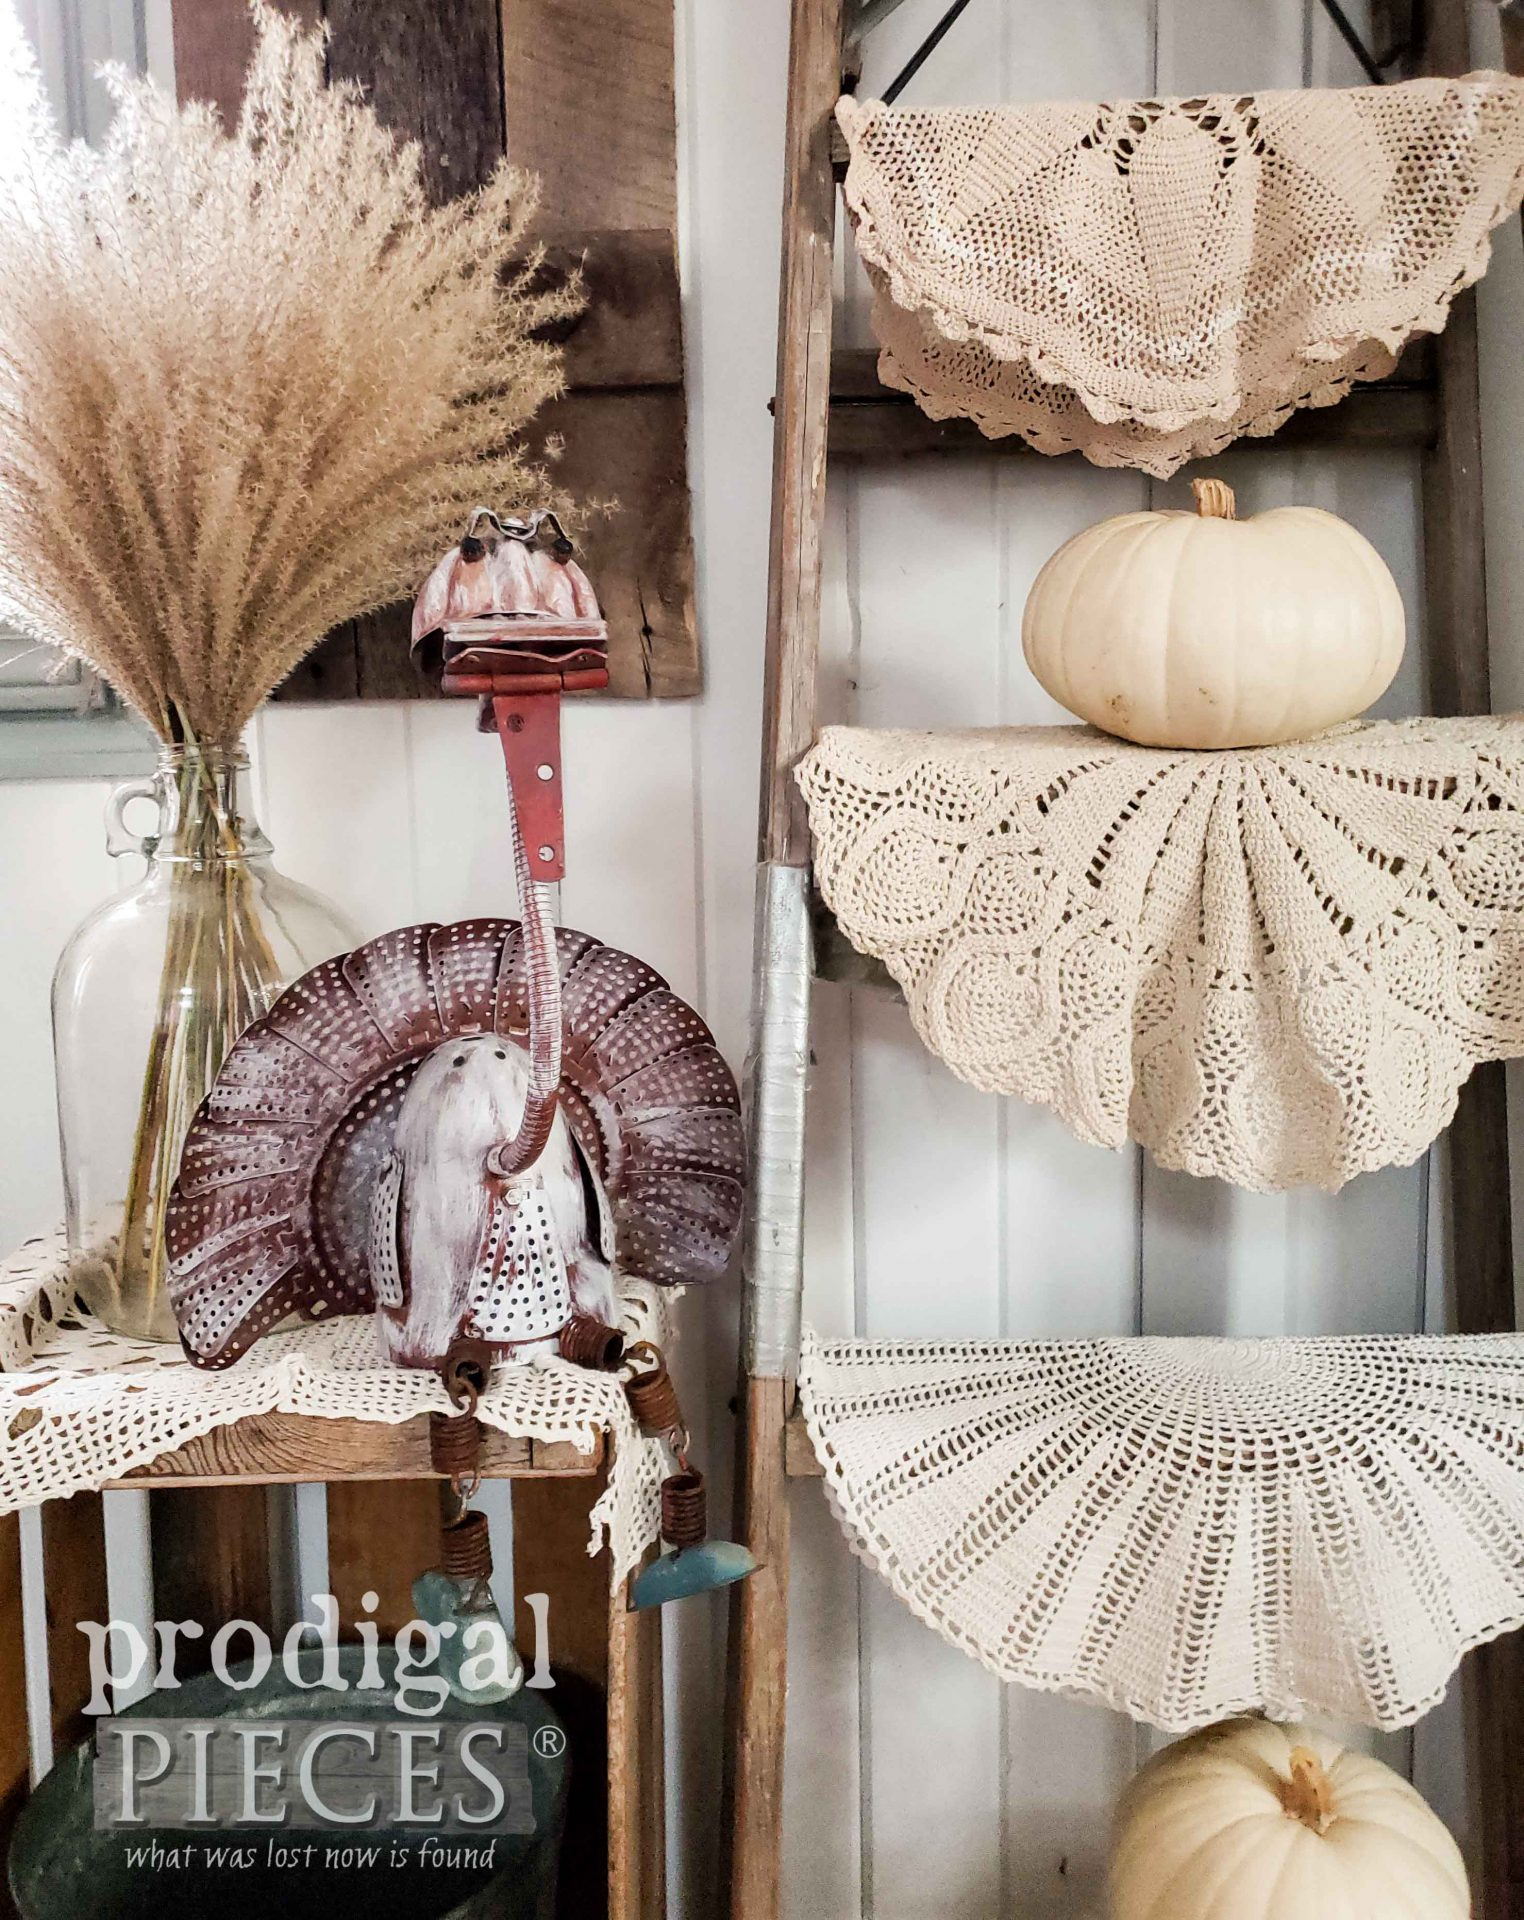 Adorable Metal Art Thanksgiving Turkey Sculpture Created by Larissa of Prodigal Pieces | prodigalpieces.com #prodigalpieces #art #artist #farmhouse #home #homedecor #thanksgiving